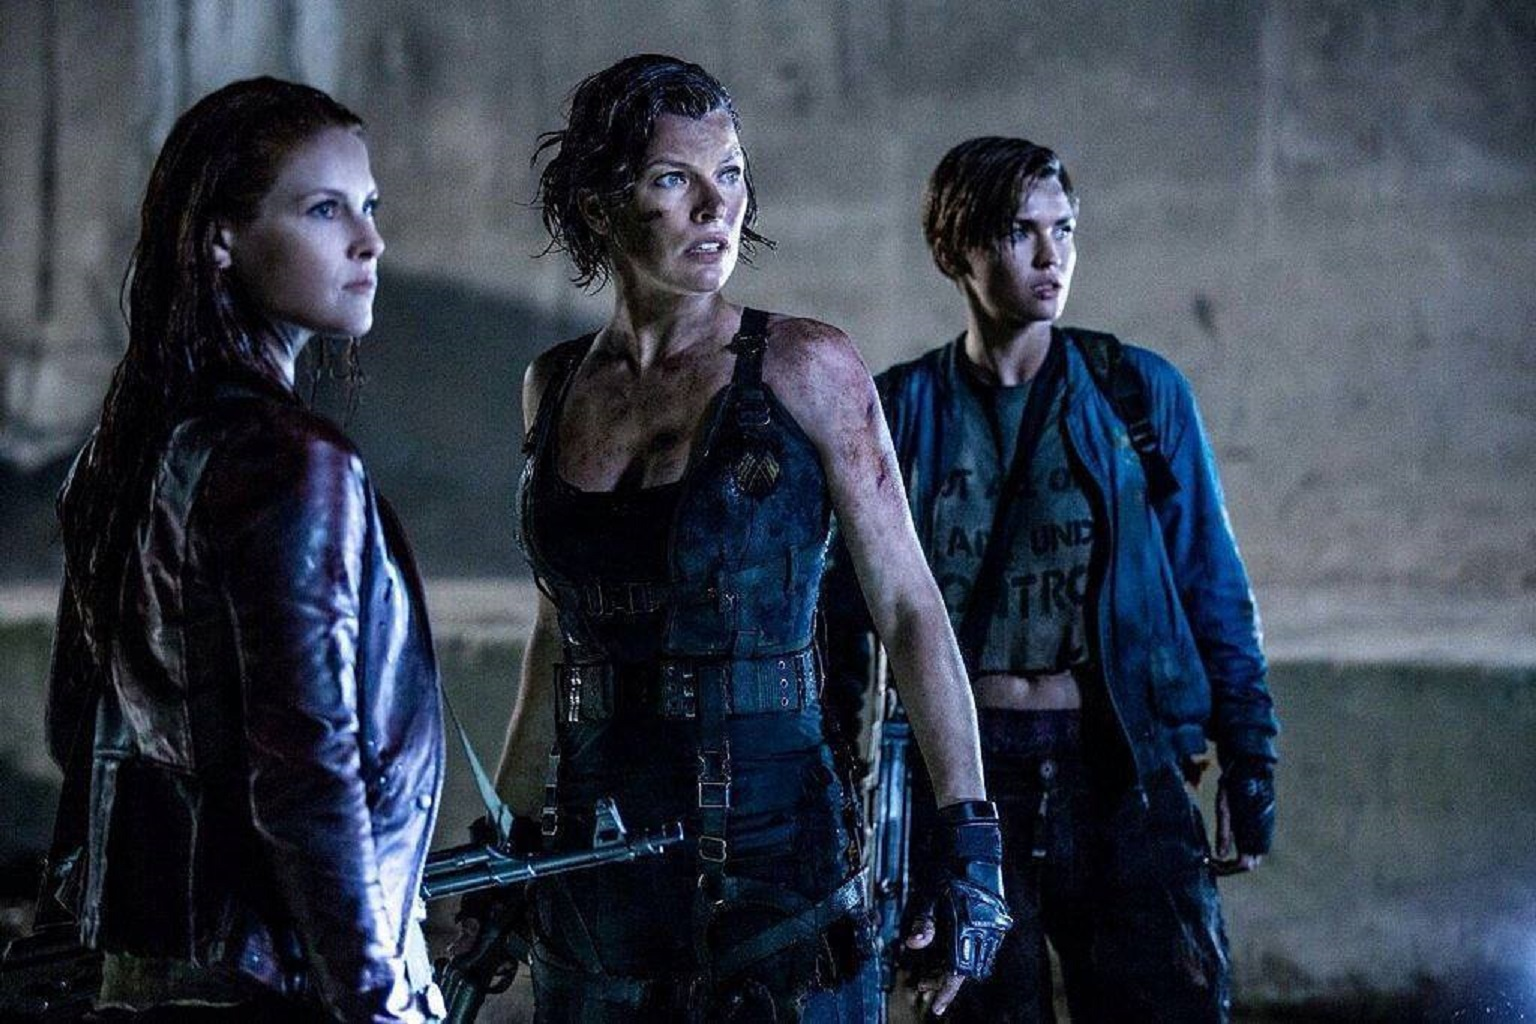 Ali Larter, Milla Jovovich, Ruby Rose in Resident Evil: The Final Chapter (2016)